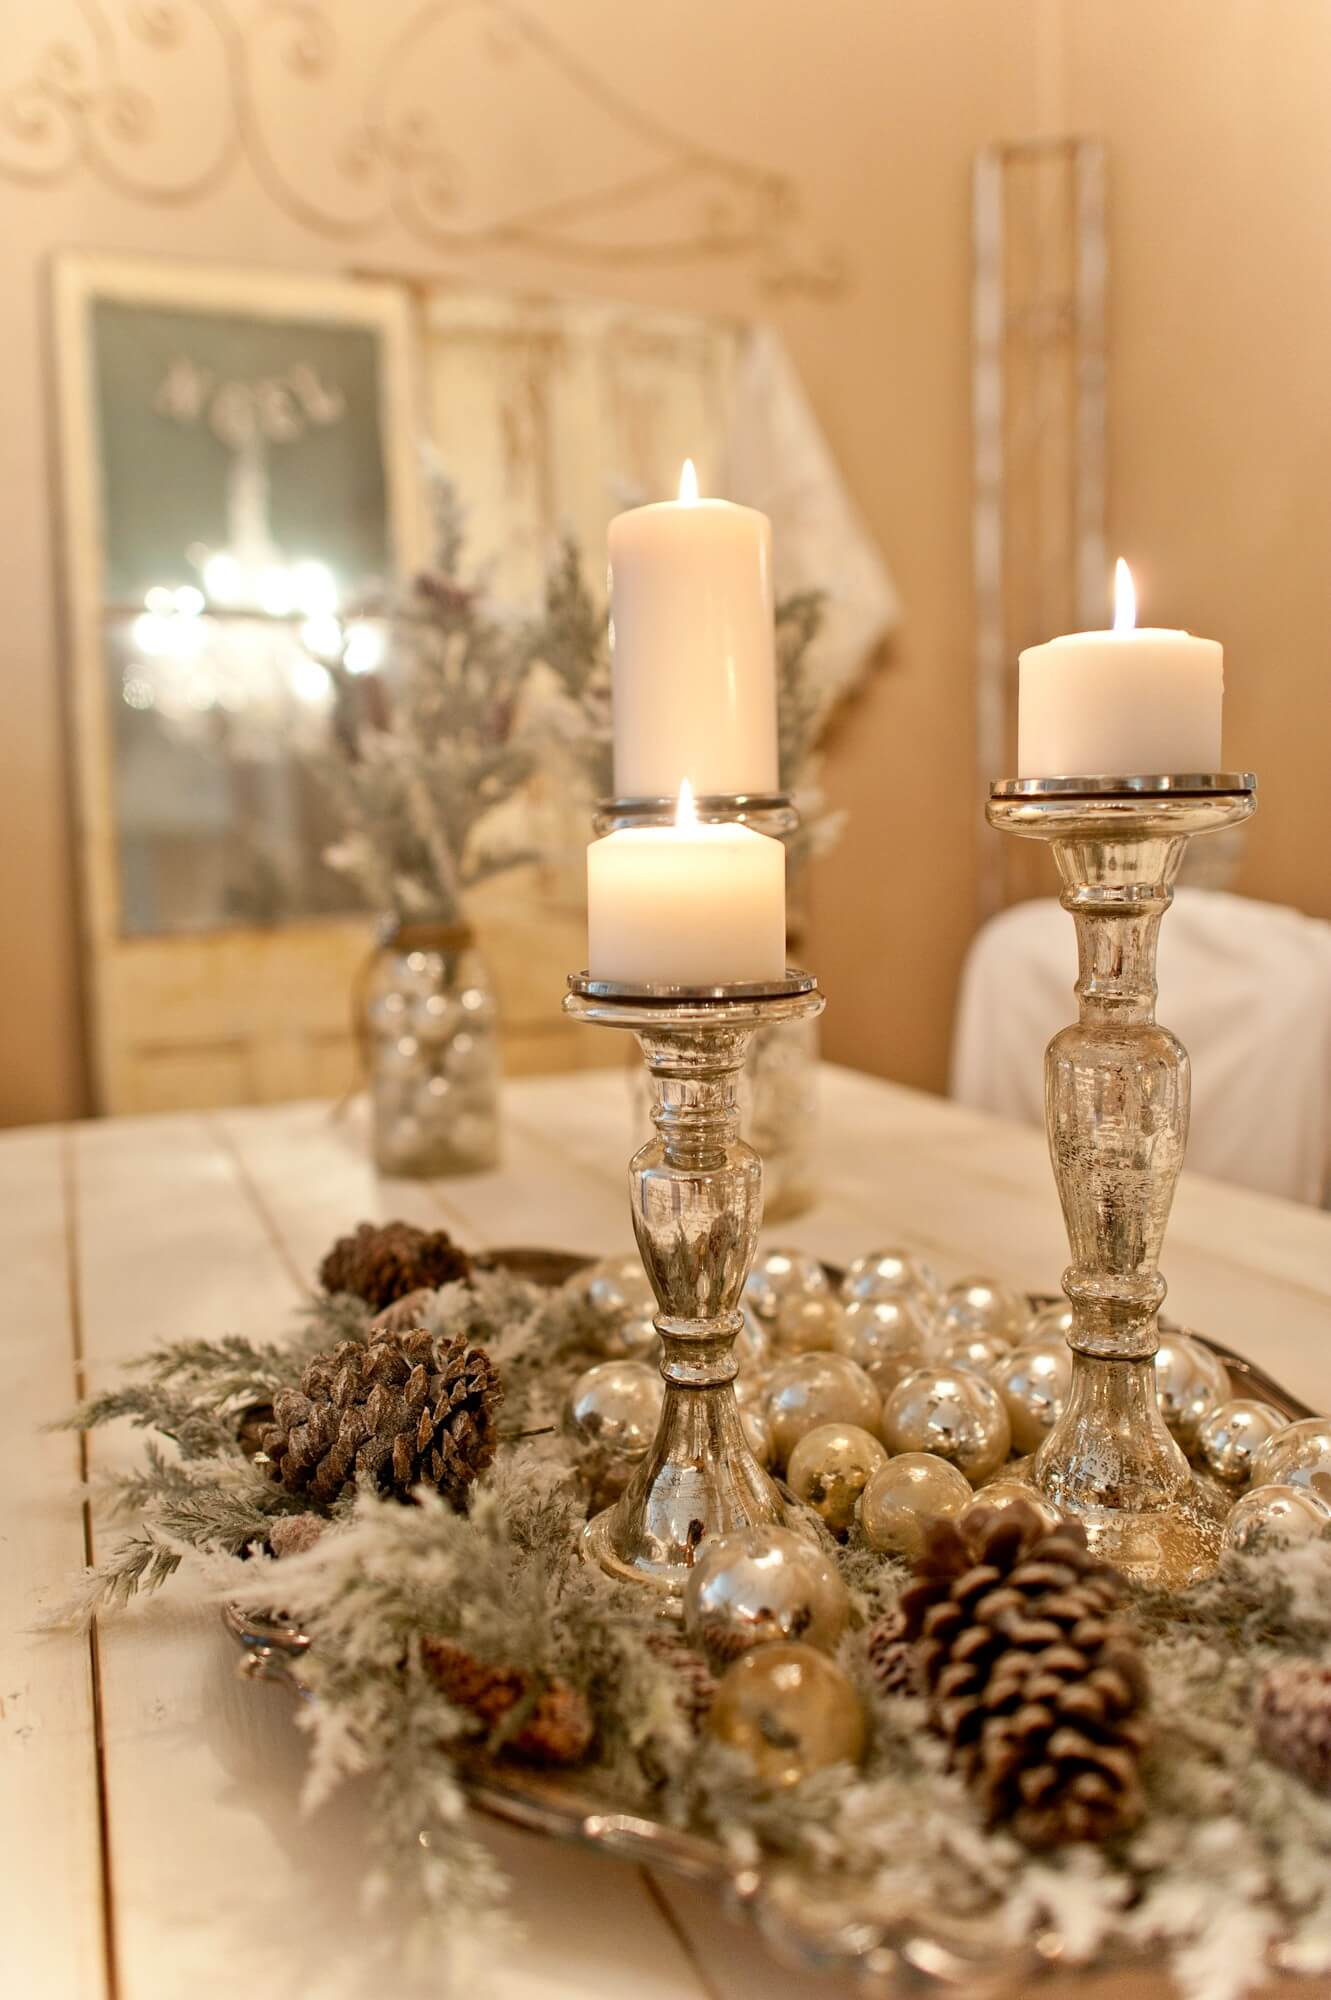 50 Best Diy Christmas Centerpieces Ideas And Designs For 2021